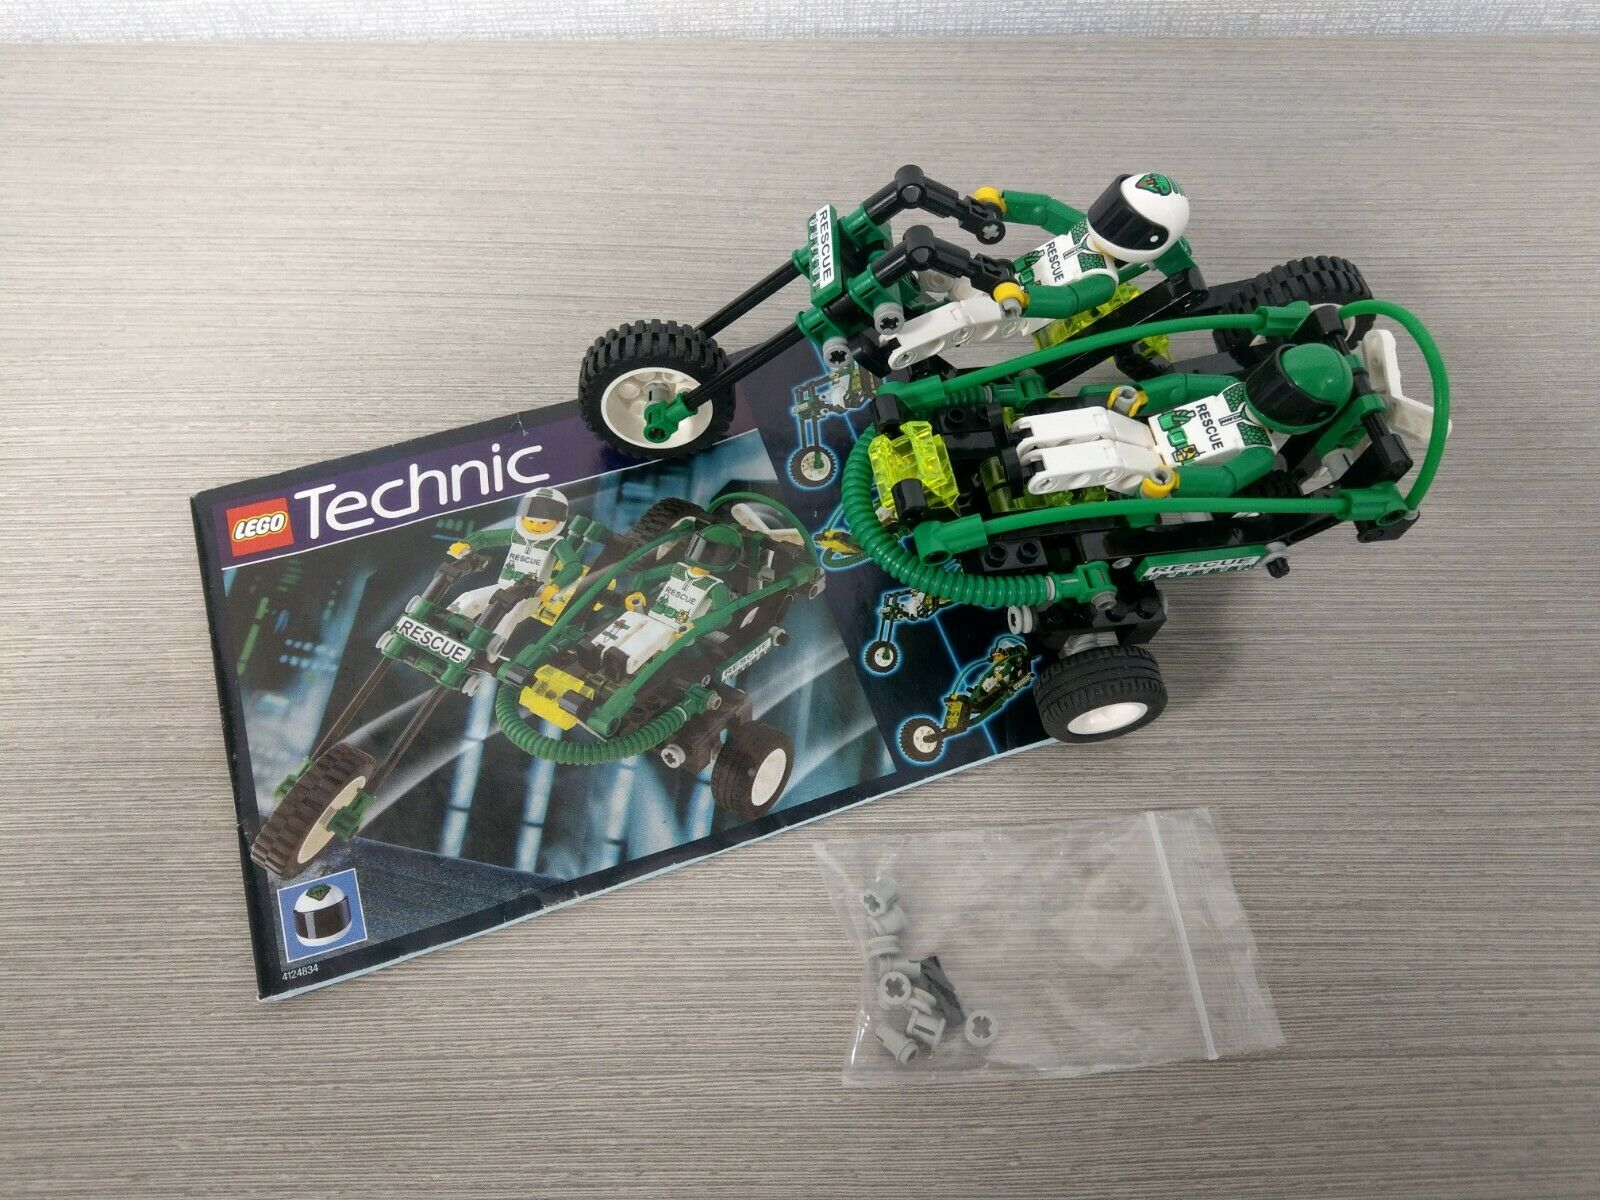 LEGO TECHNIC 8255 RESCUE BIKE 100 complete with INSTRUCTIONS and FIGURES